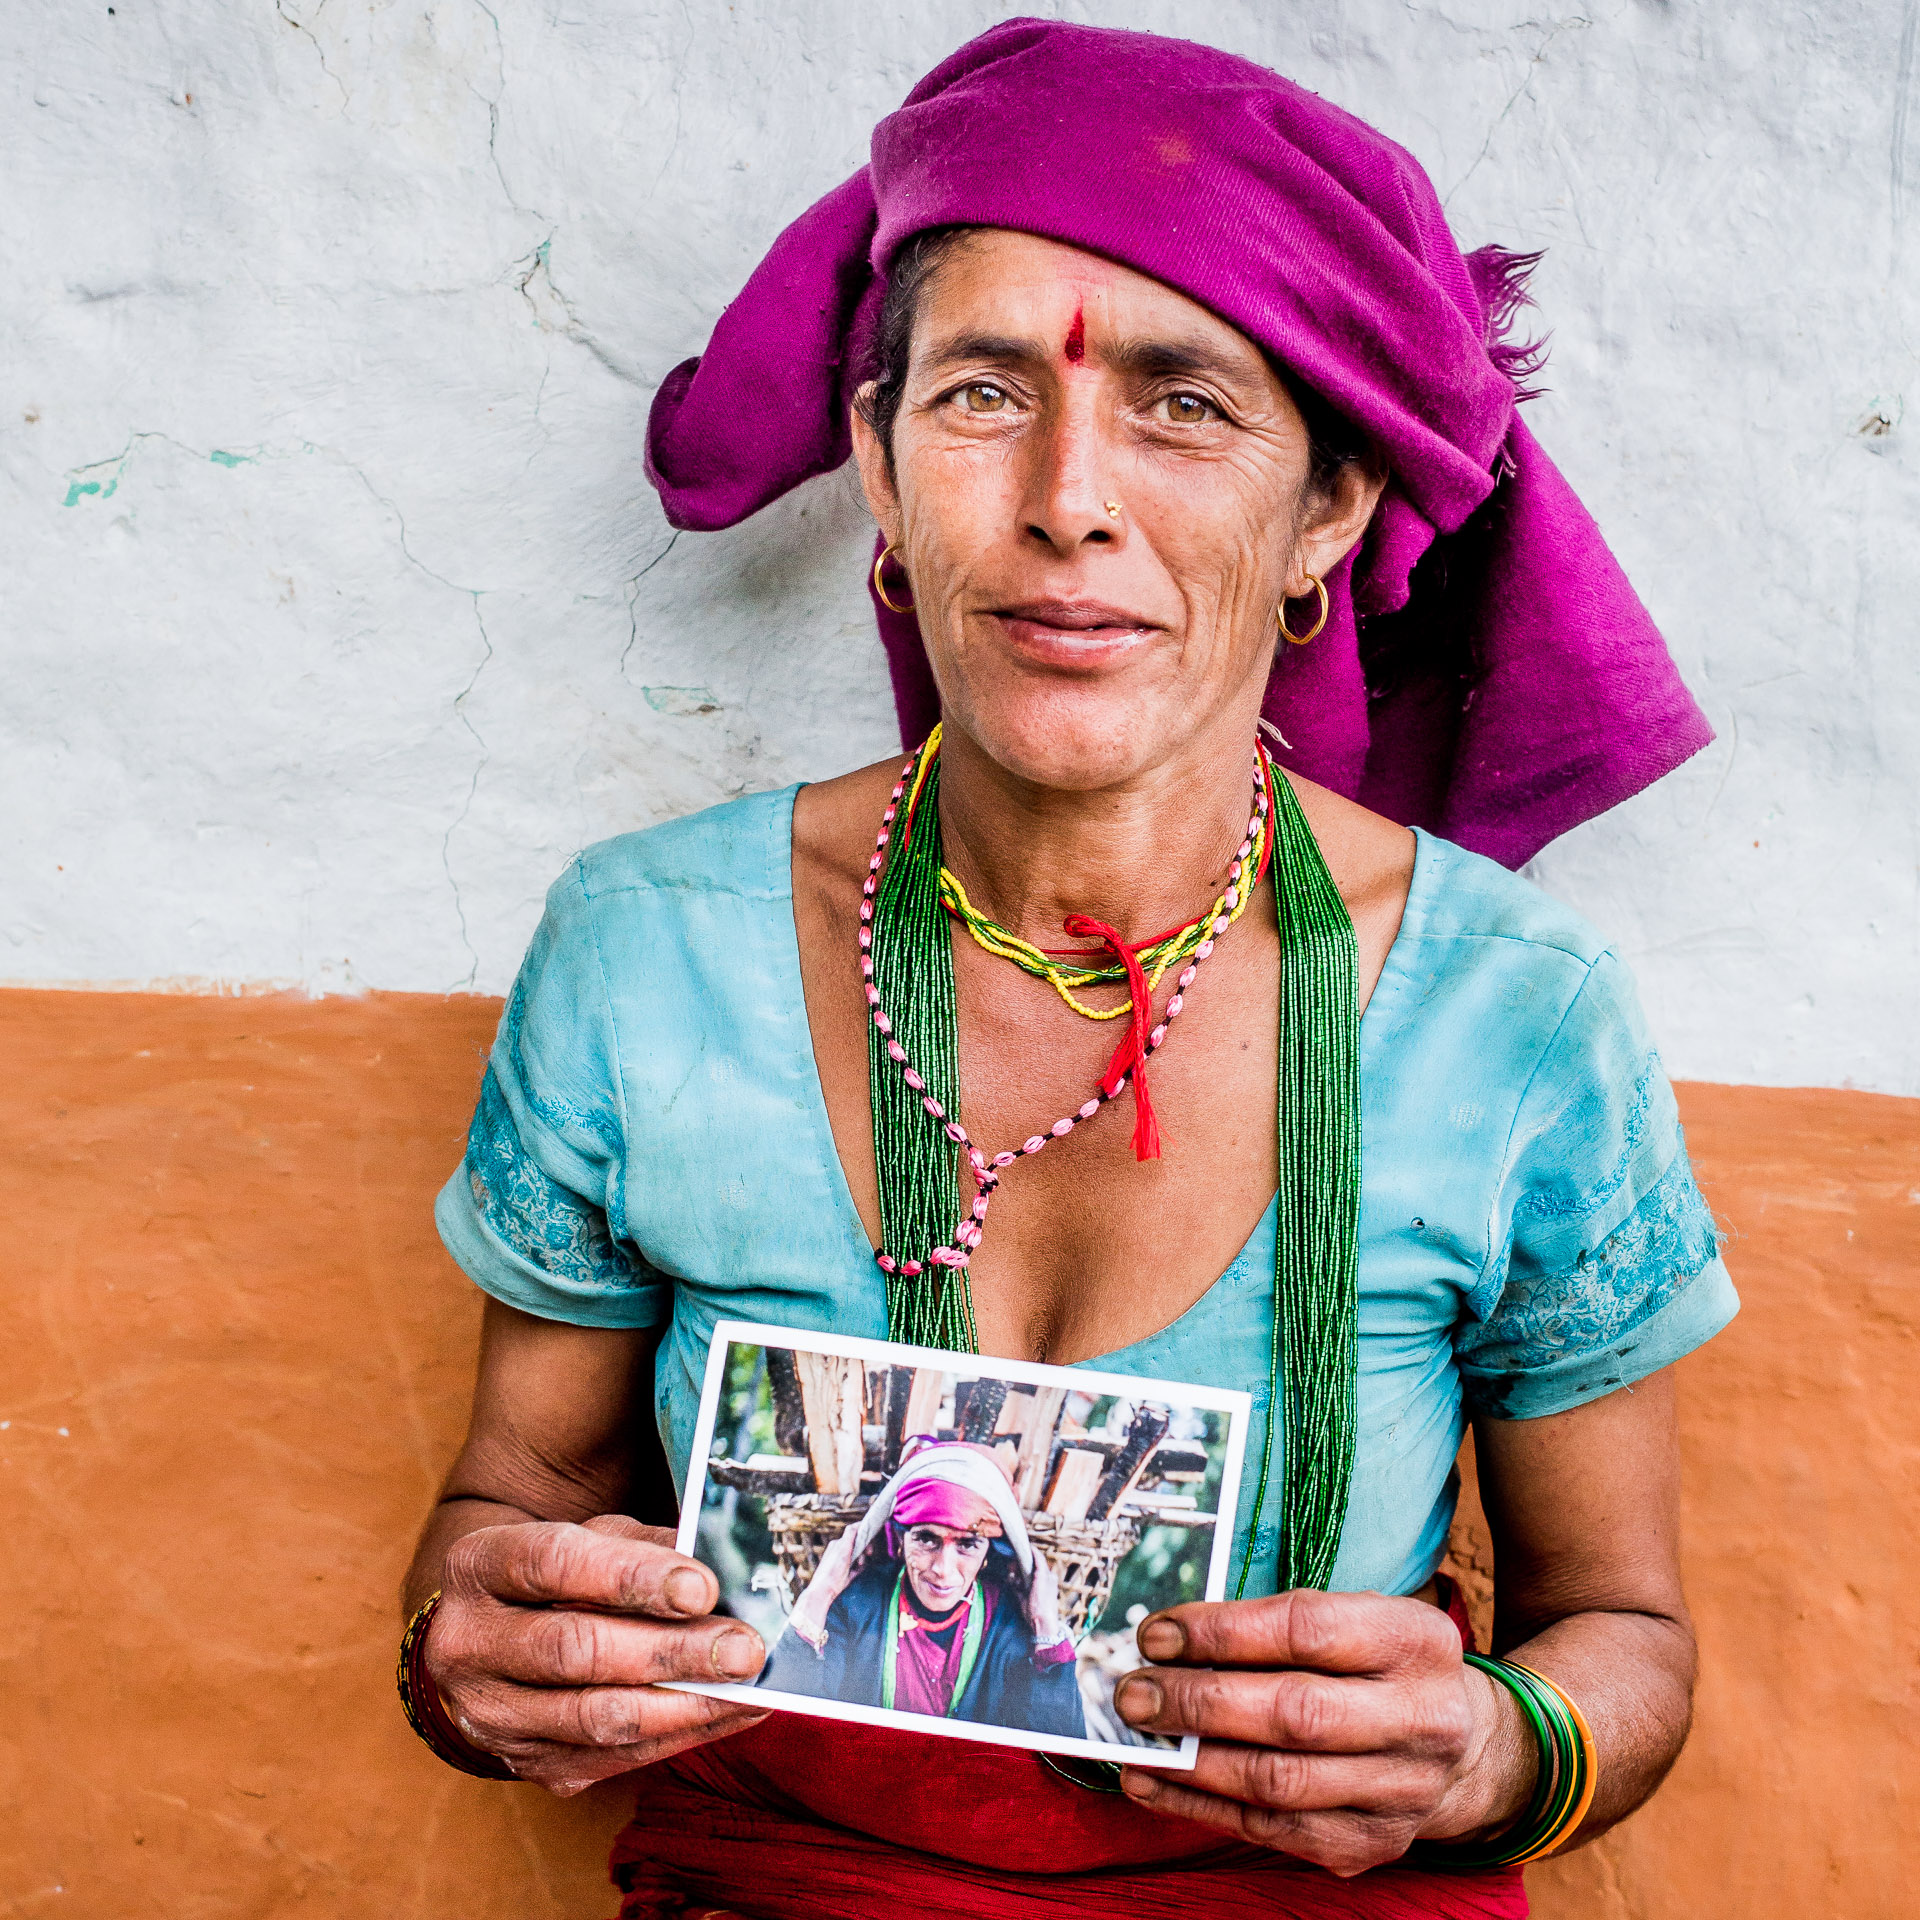 Posing with her photo wearing traditional clothing. The yellow and green necklace and the bracelets on her arm signify that she is married.